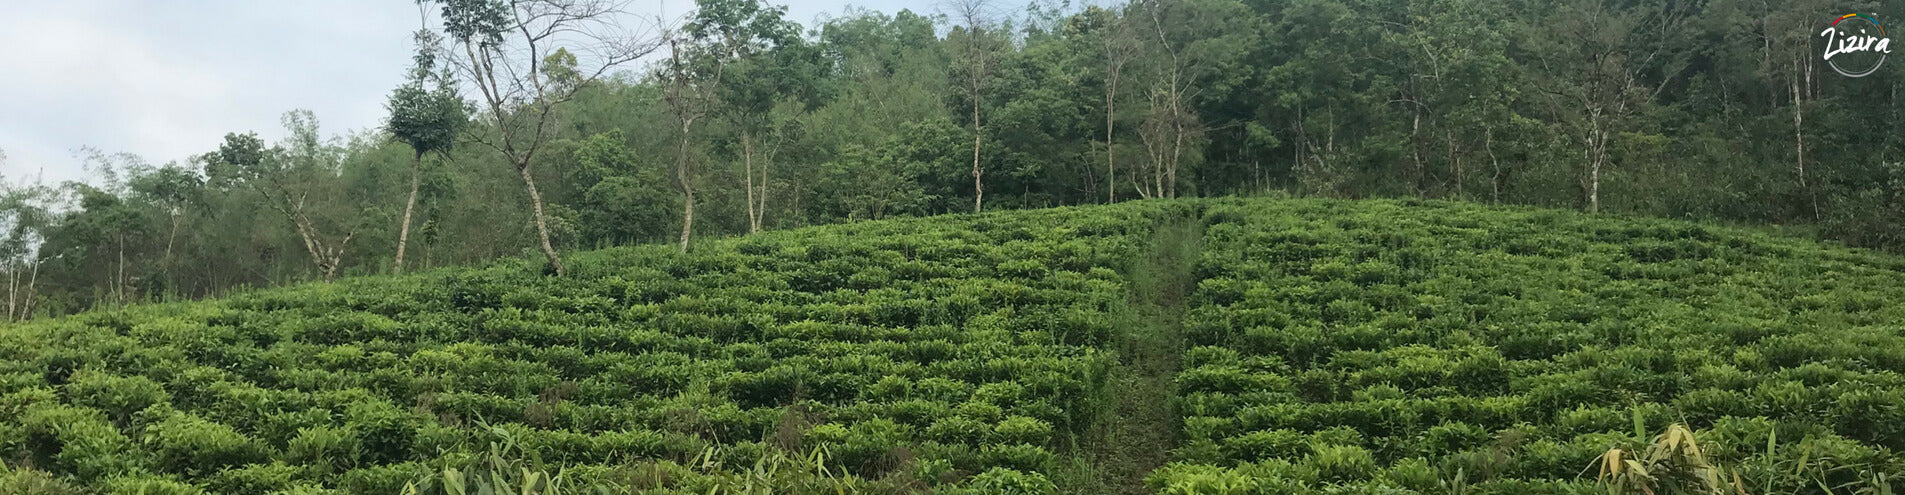 From Cowherding to Tea Cultivation - The Journey of a Tea Farm Owner